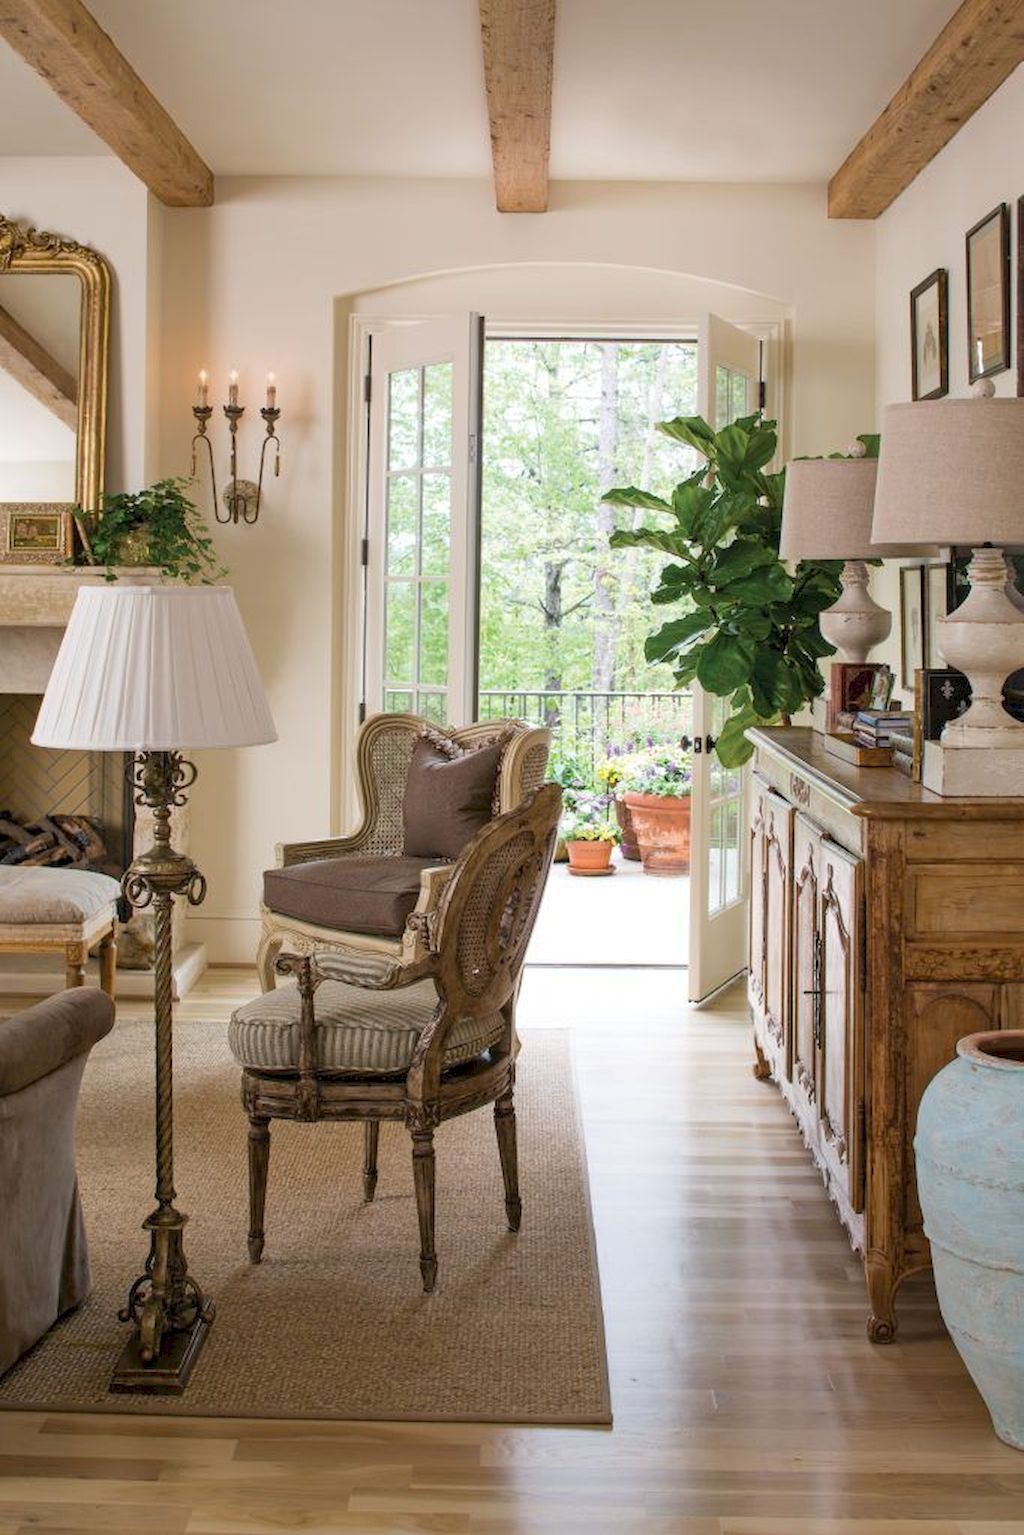 60 Fancy French Country Living Room Decor Ideas #livingroomideas